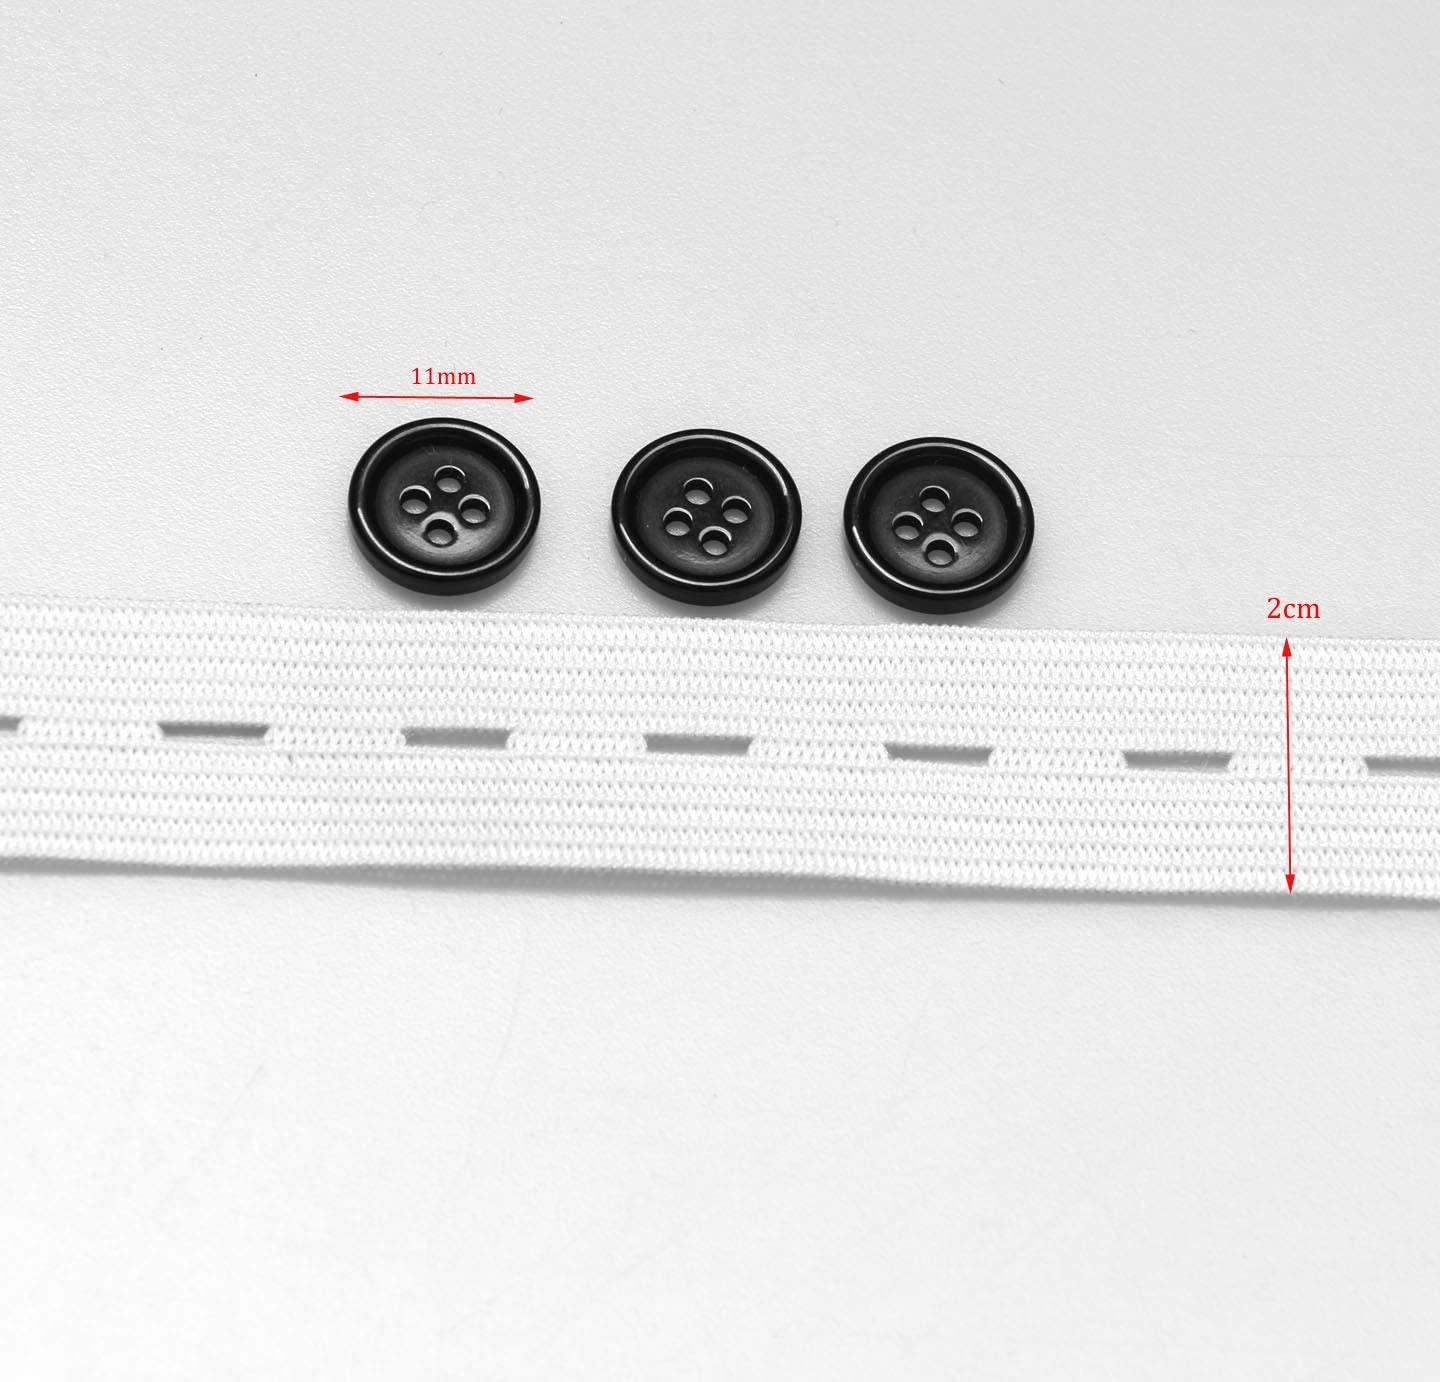 3//4 by 5Yds White Buttonhole Elastic Spool with 10pcs Black Resin Buttons Heavy Duty Adjustable Pant Button Extenders